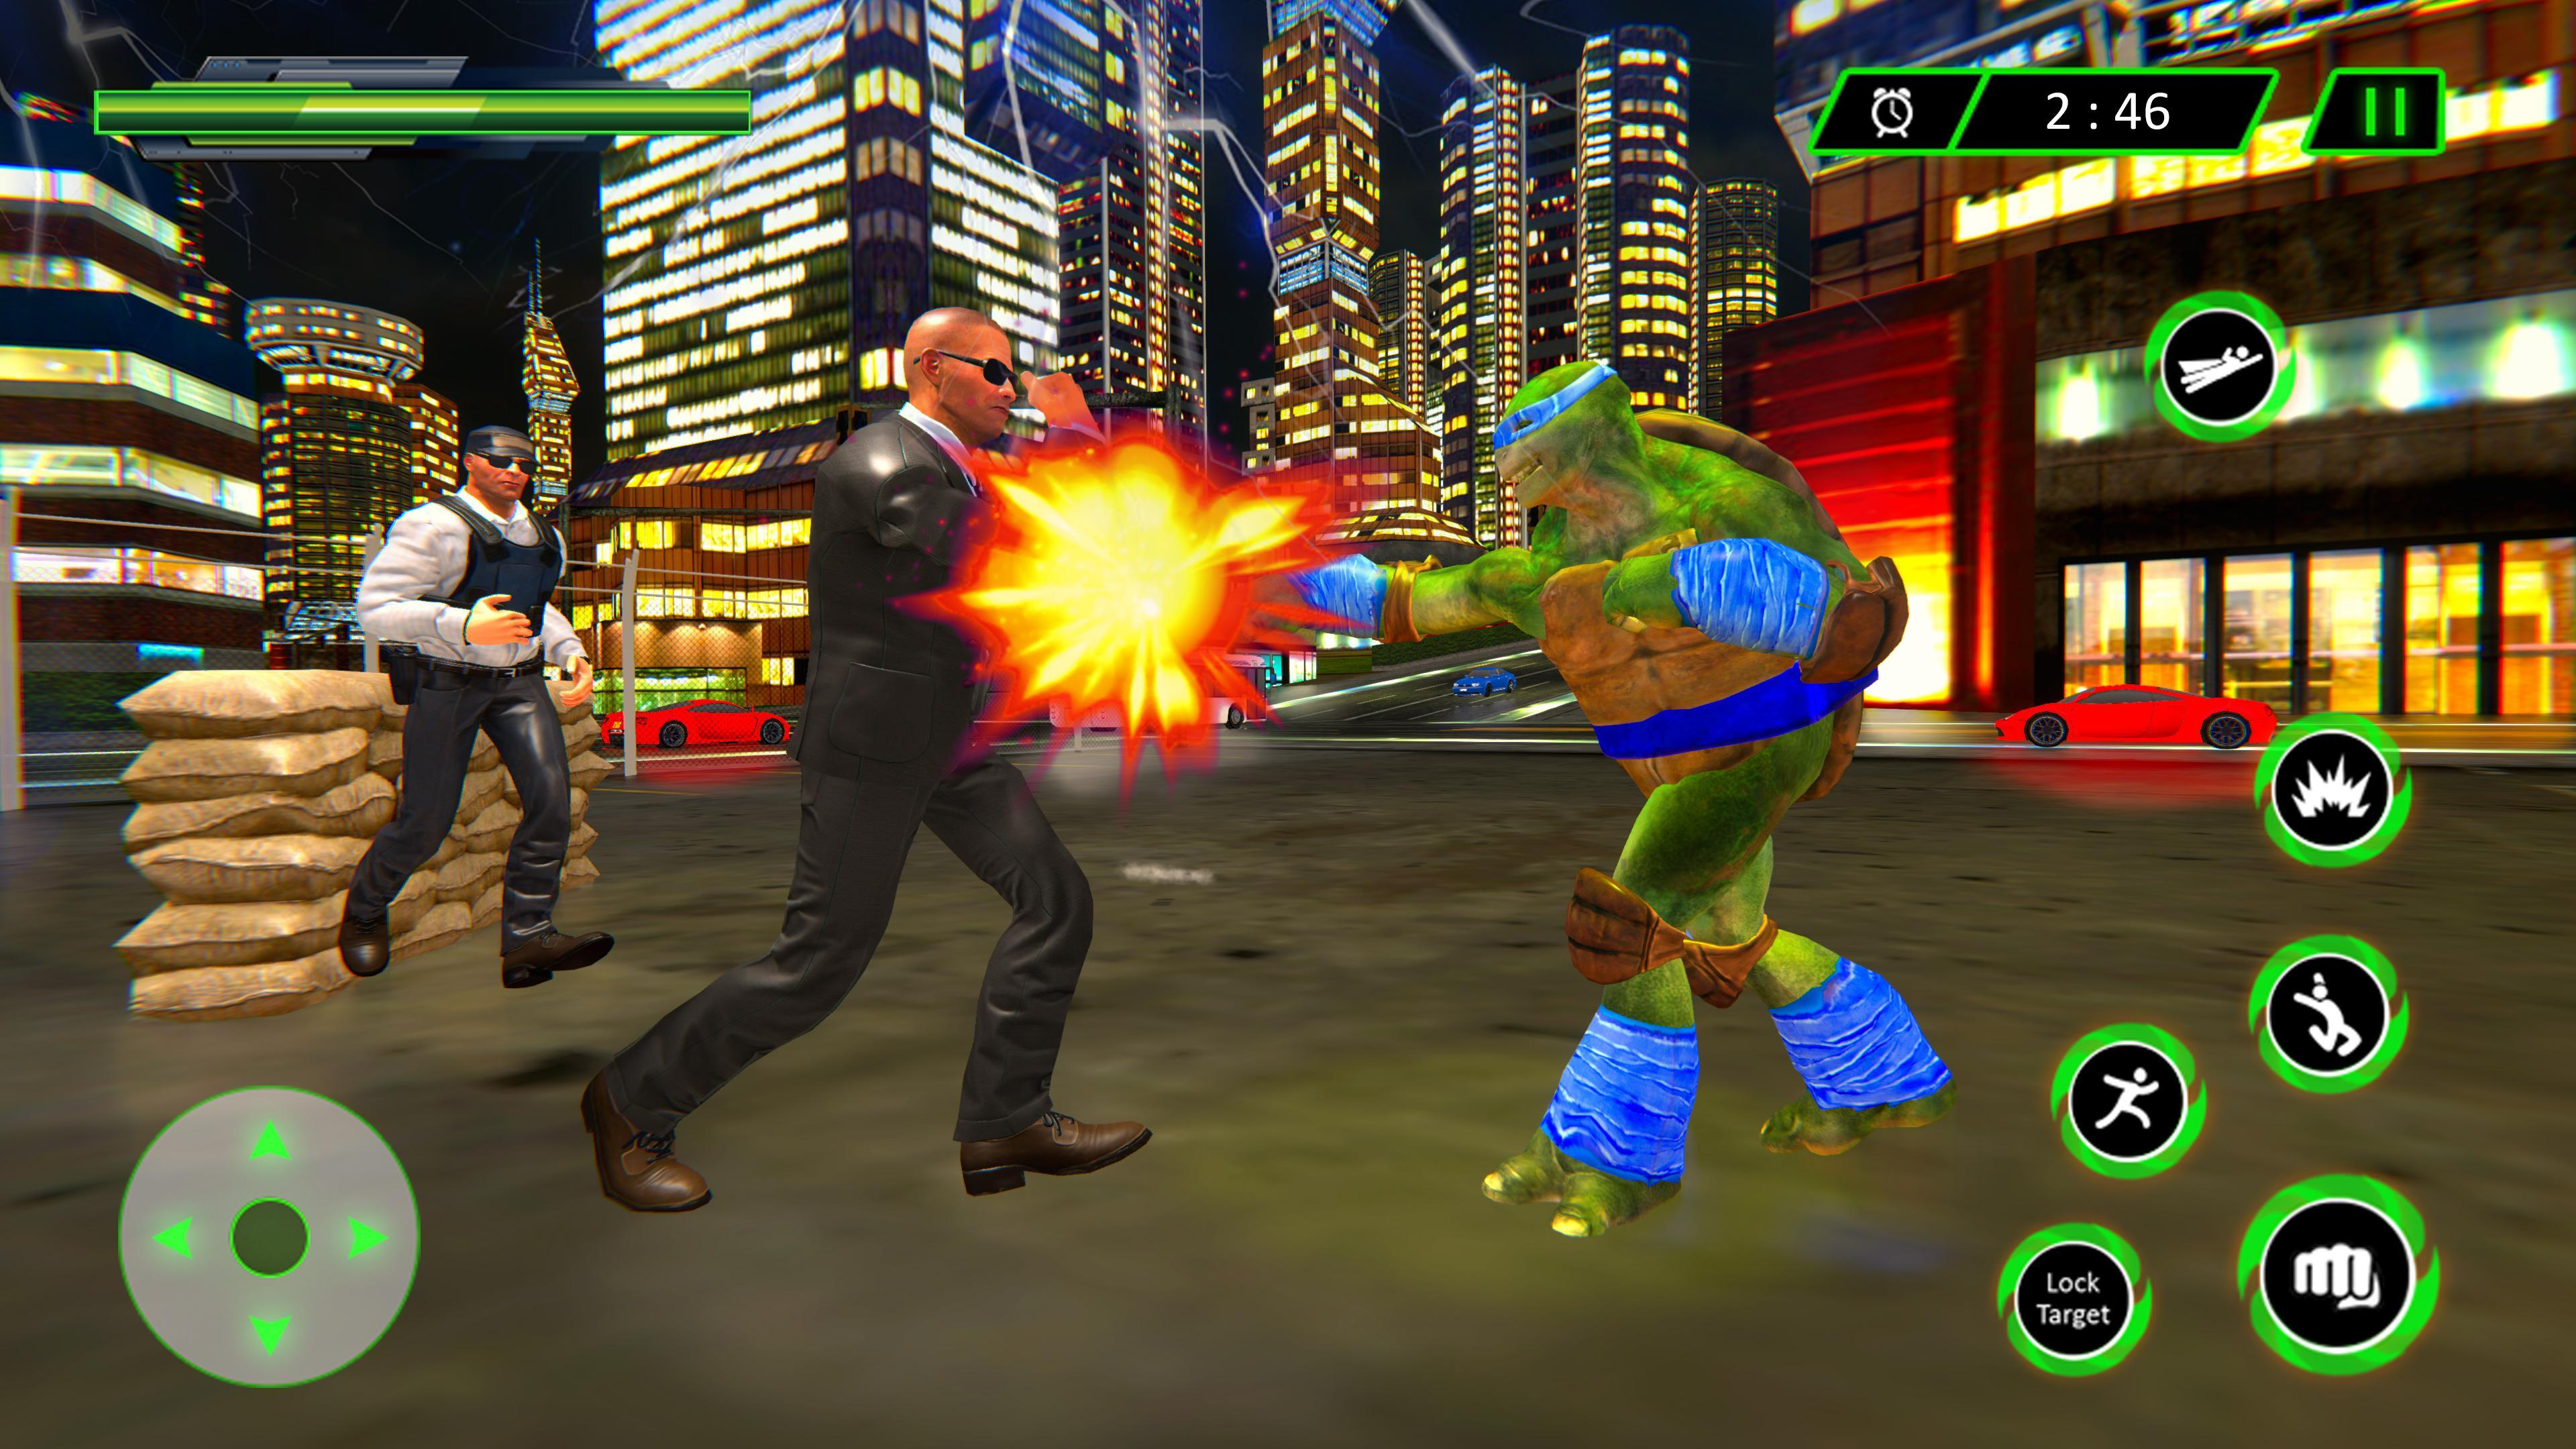 Superstar Ninja Turtle Fight Simulator Game 2018 for Android